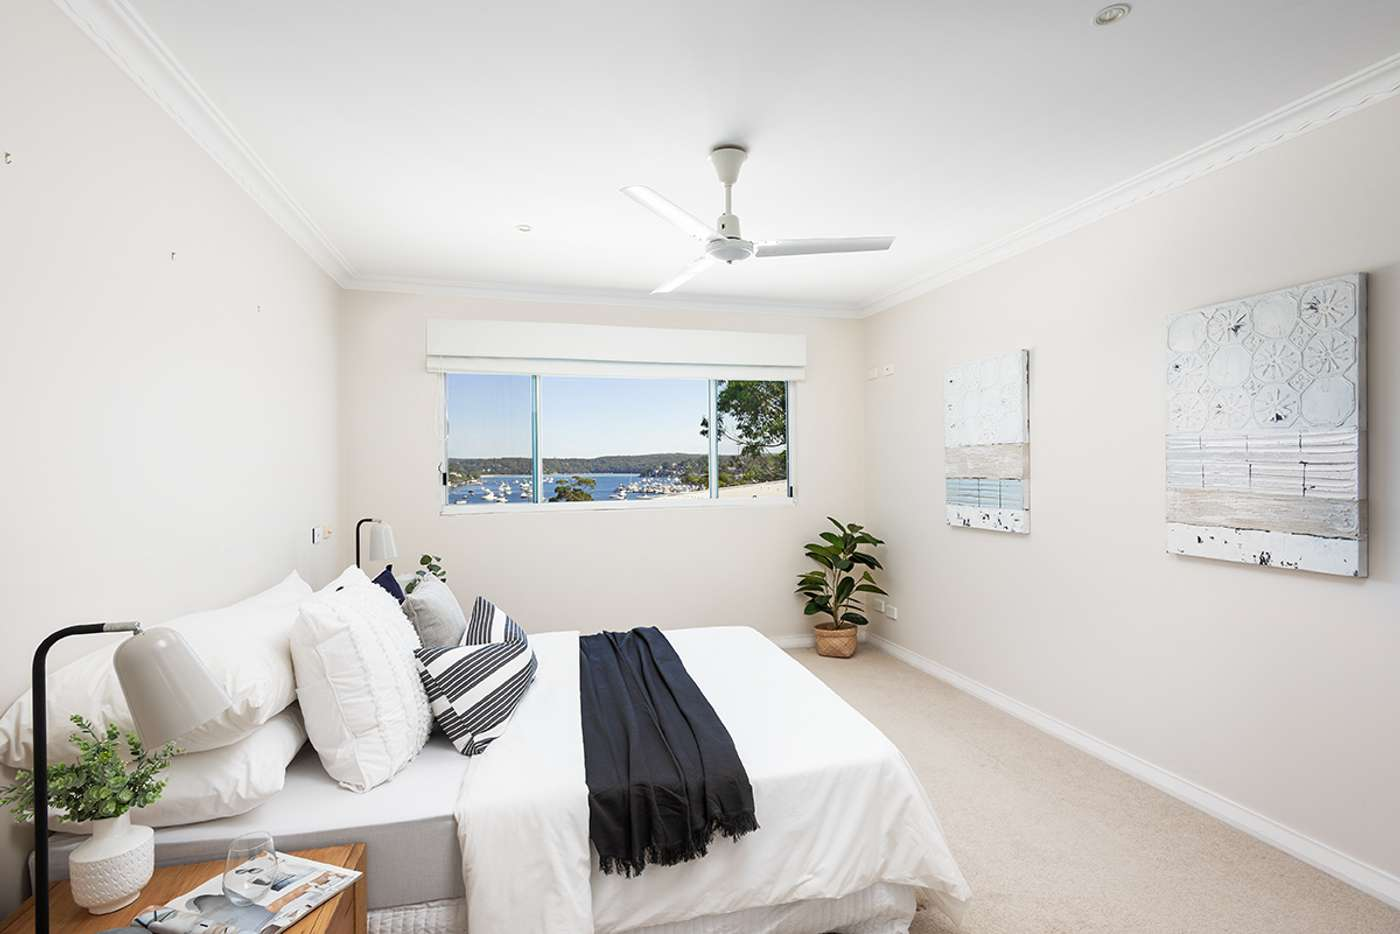 Sixth view of Homely house listing, 26 Dominic Street, Burraneer NSW 2230